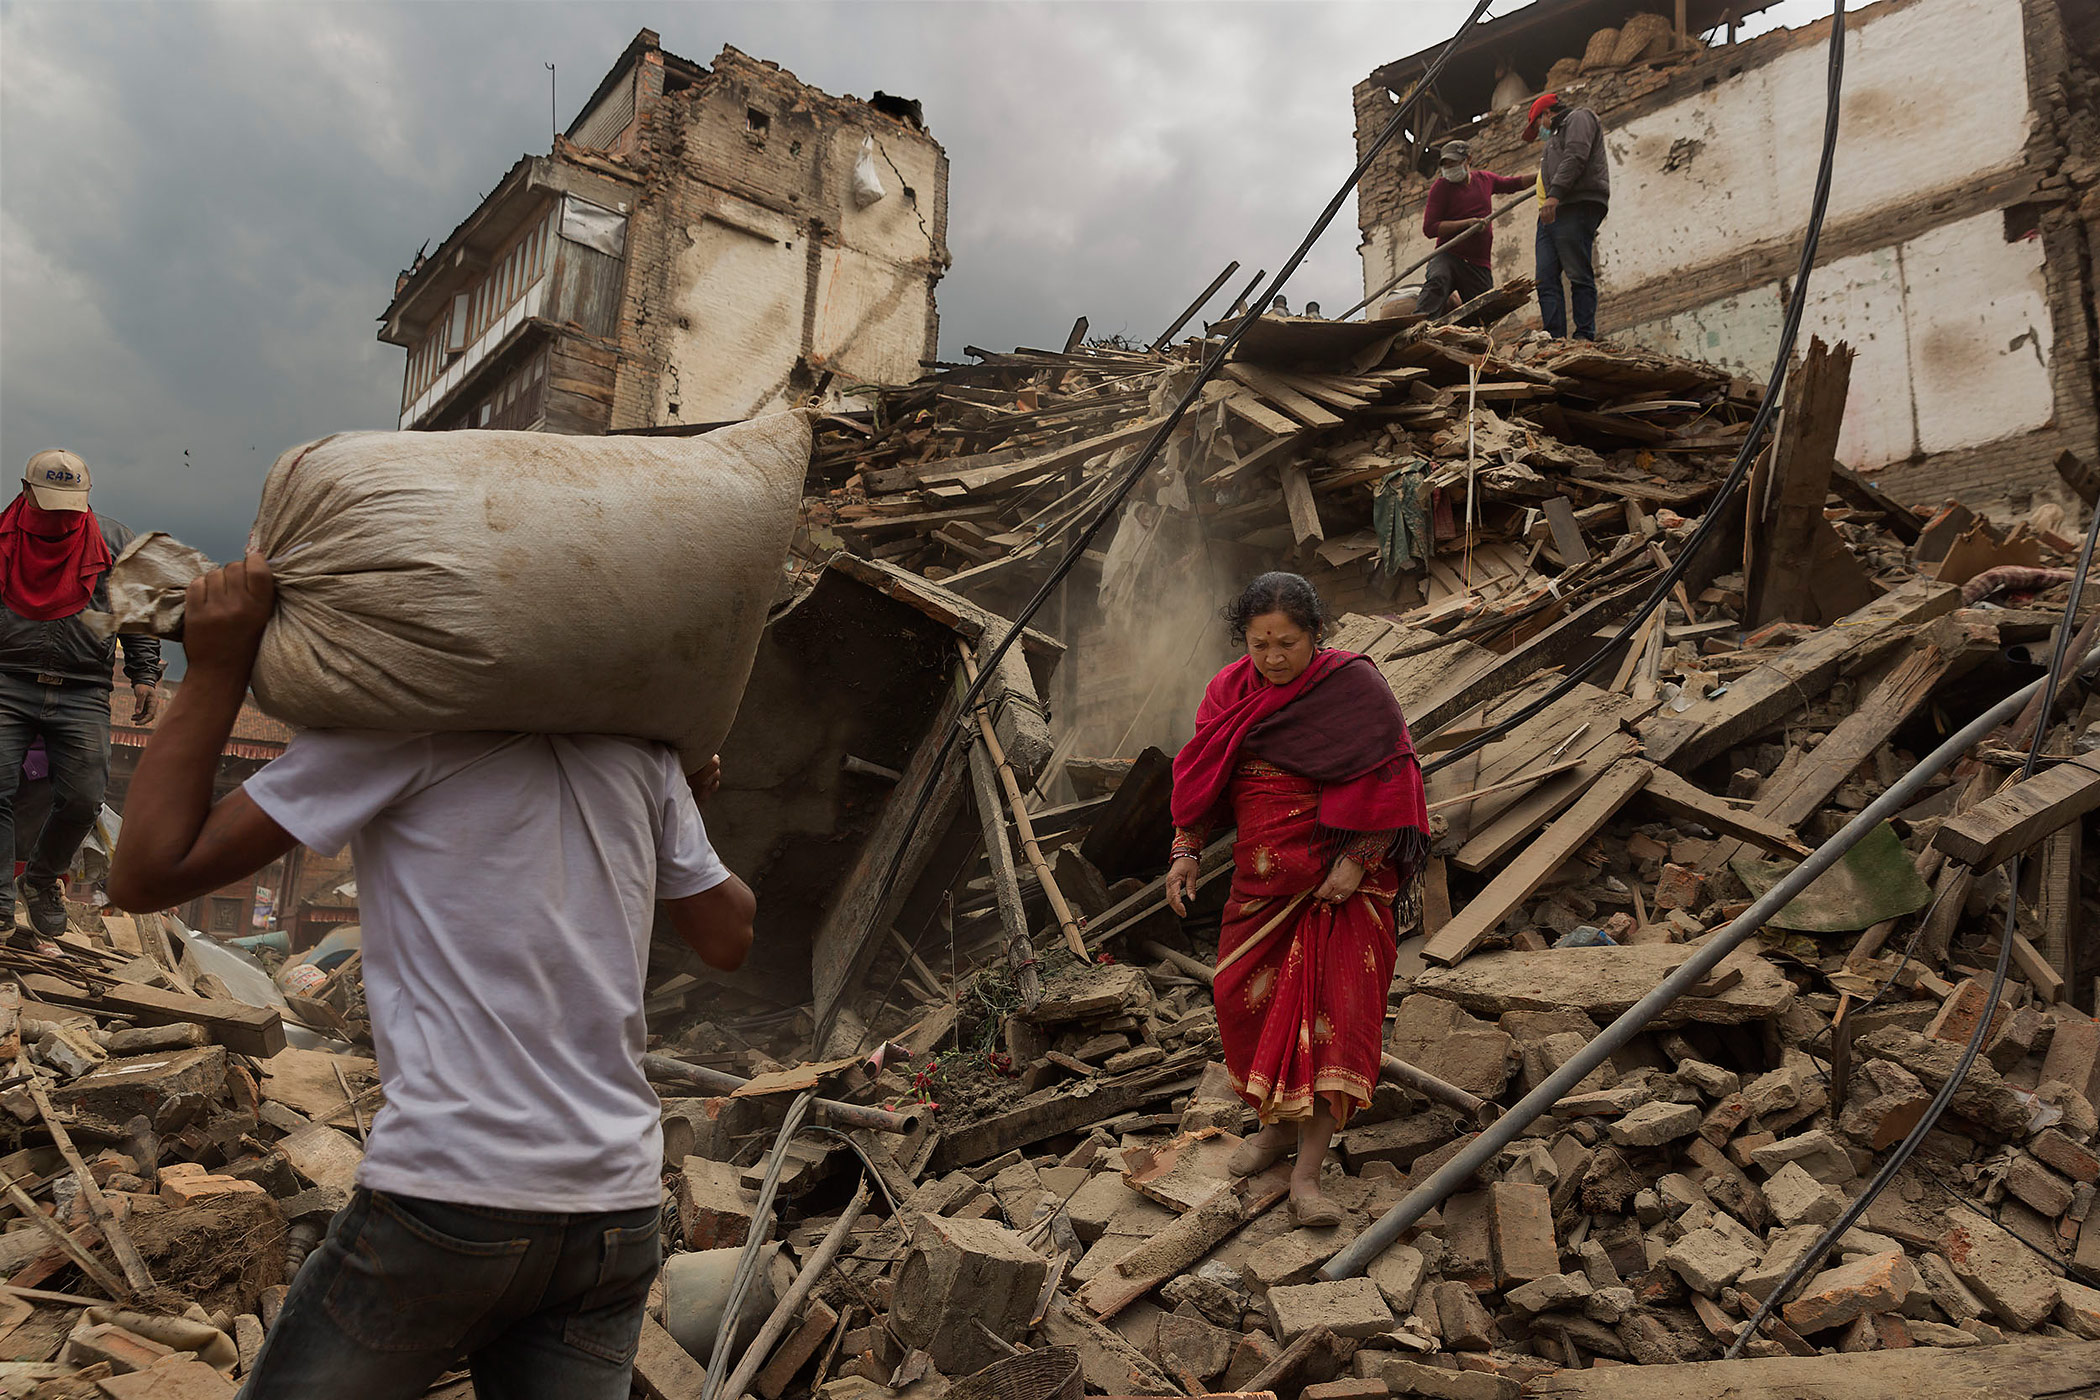 People reclaim their possessions from the wreckage in Bhaktapur, Nepal.